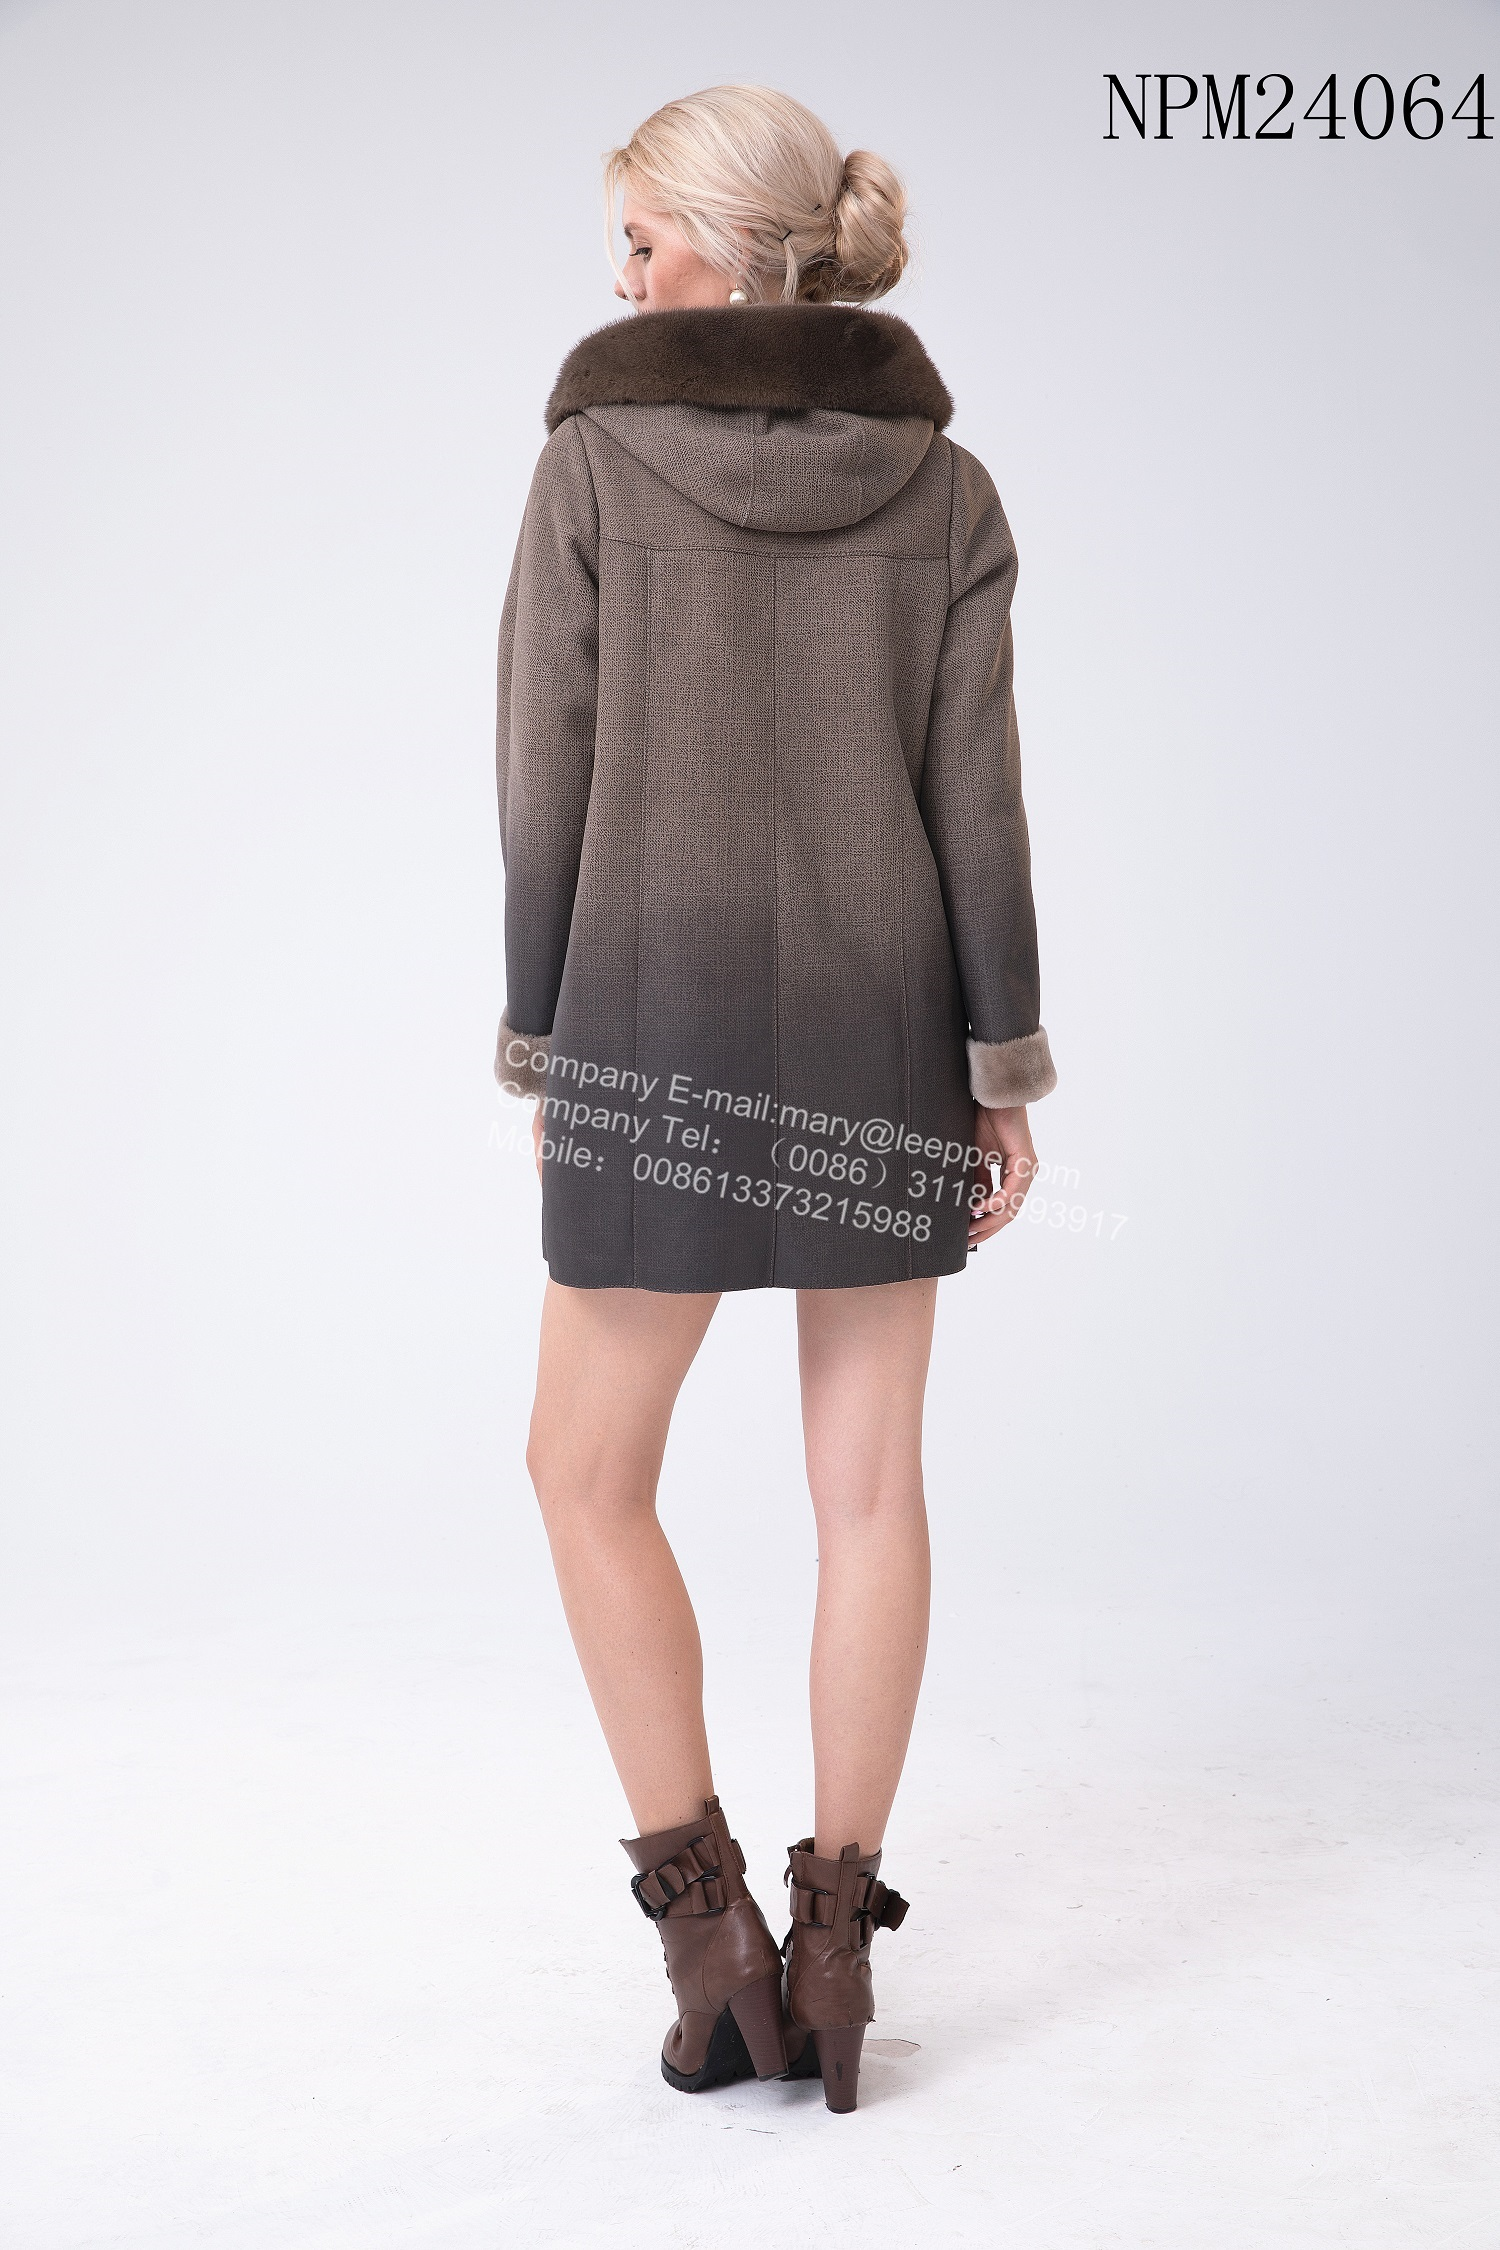 Winter Australia Merino Shearling Hooded Jacket